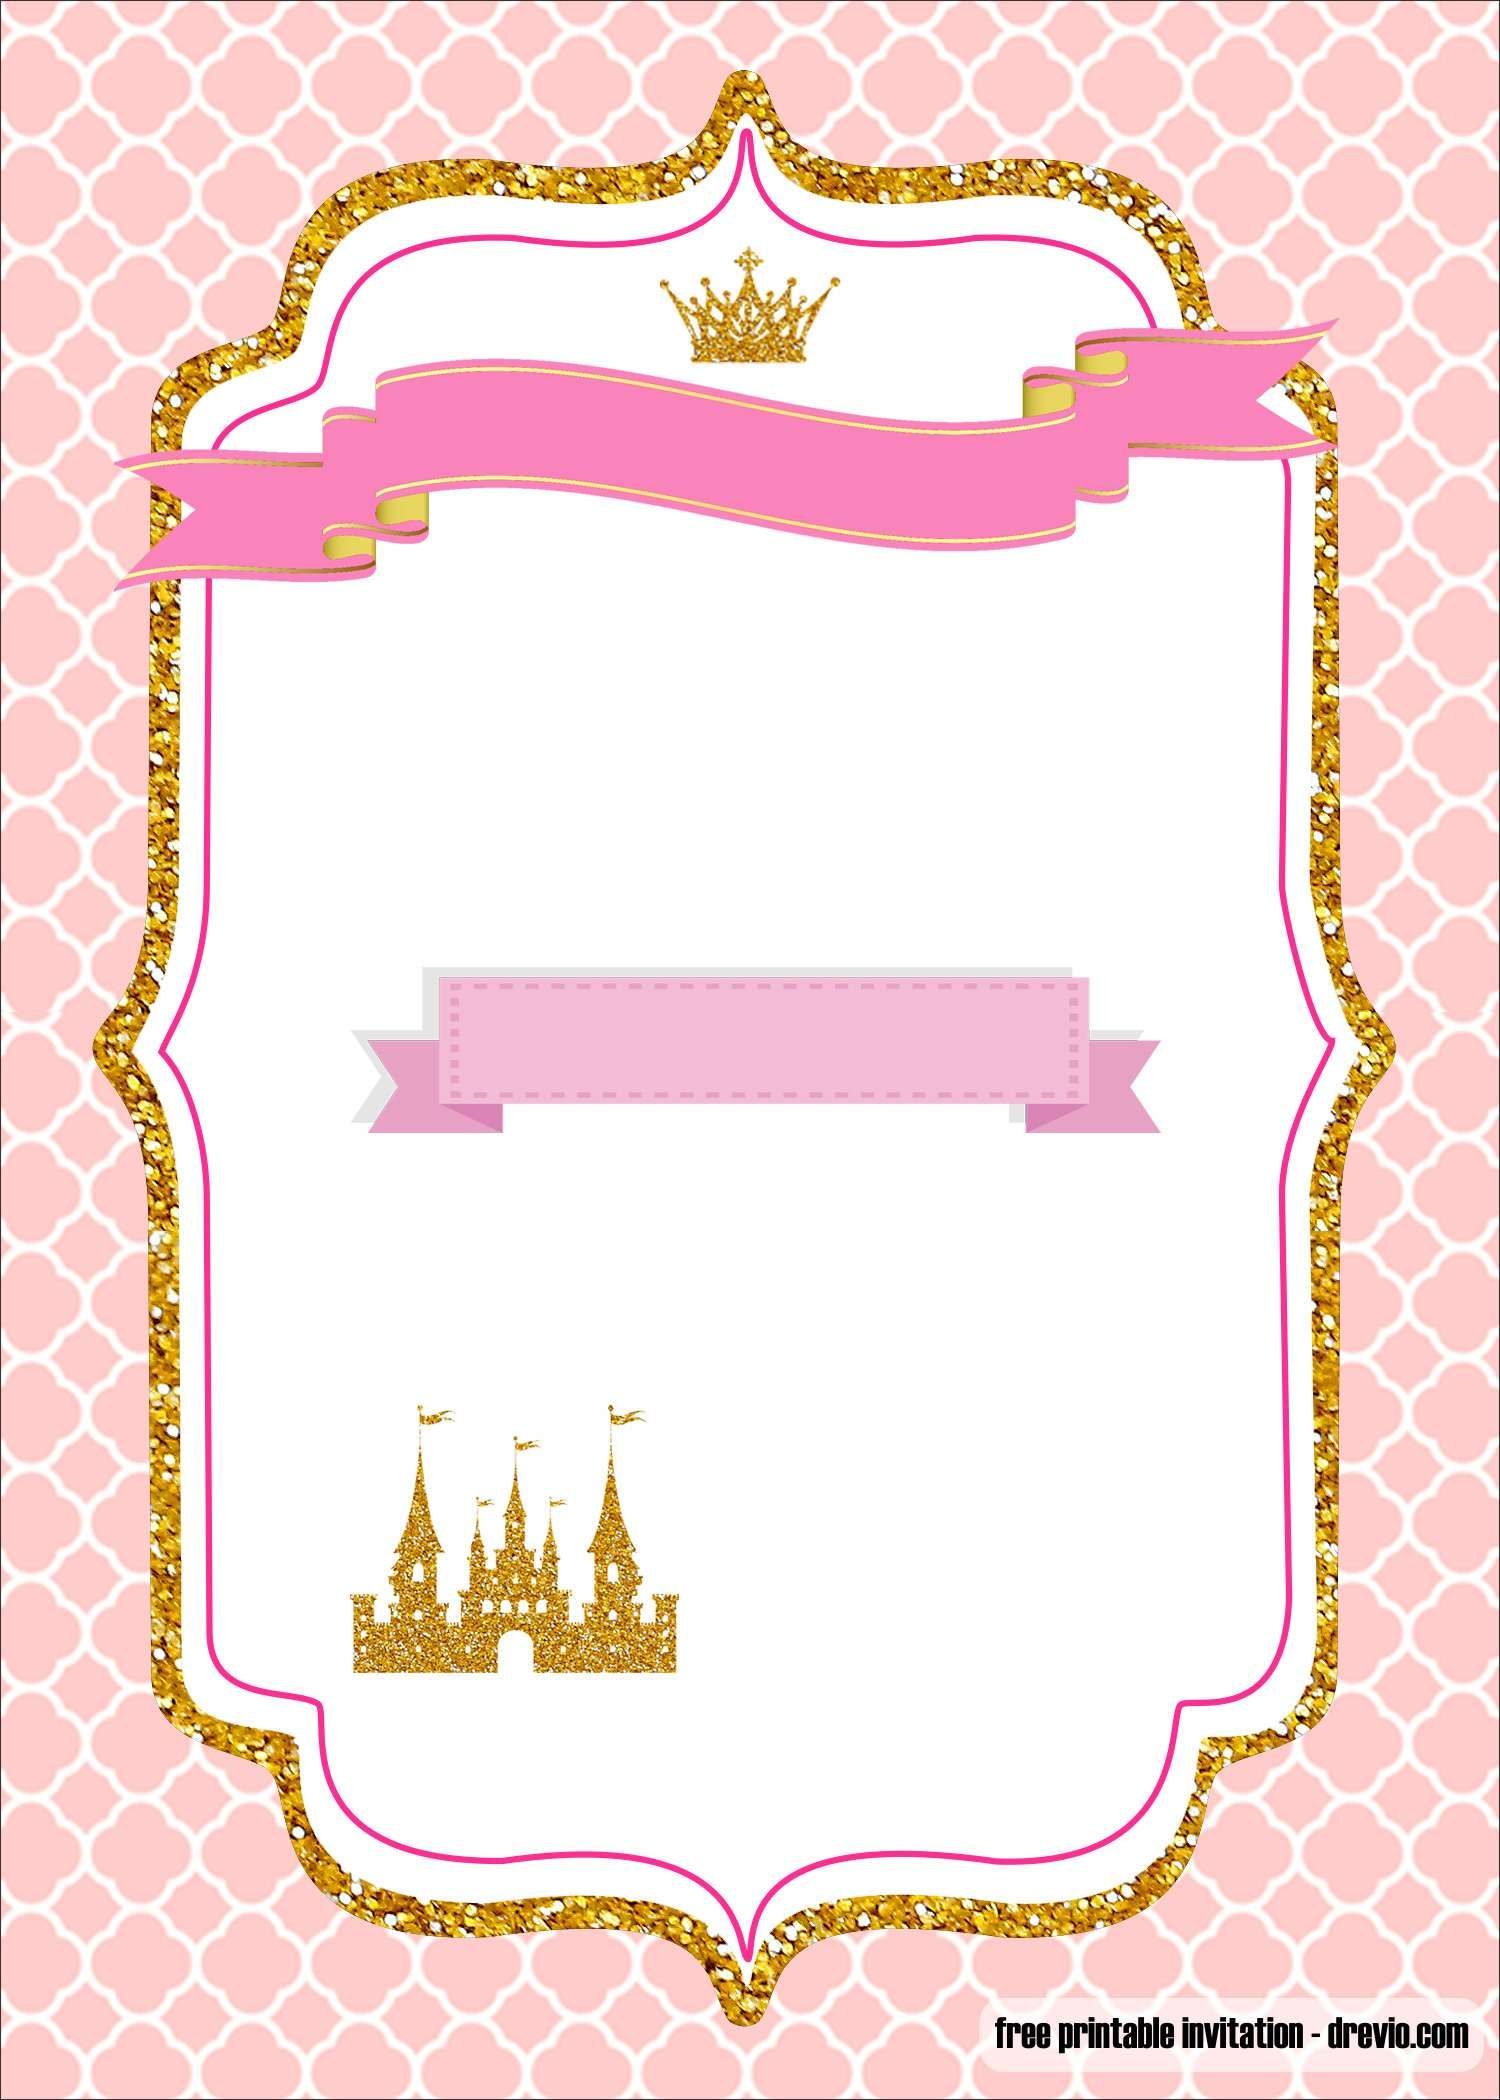 Free Printable Royal Princess Party Invitation Free Printable